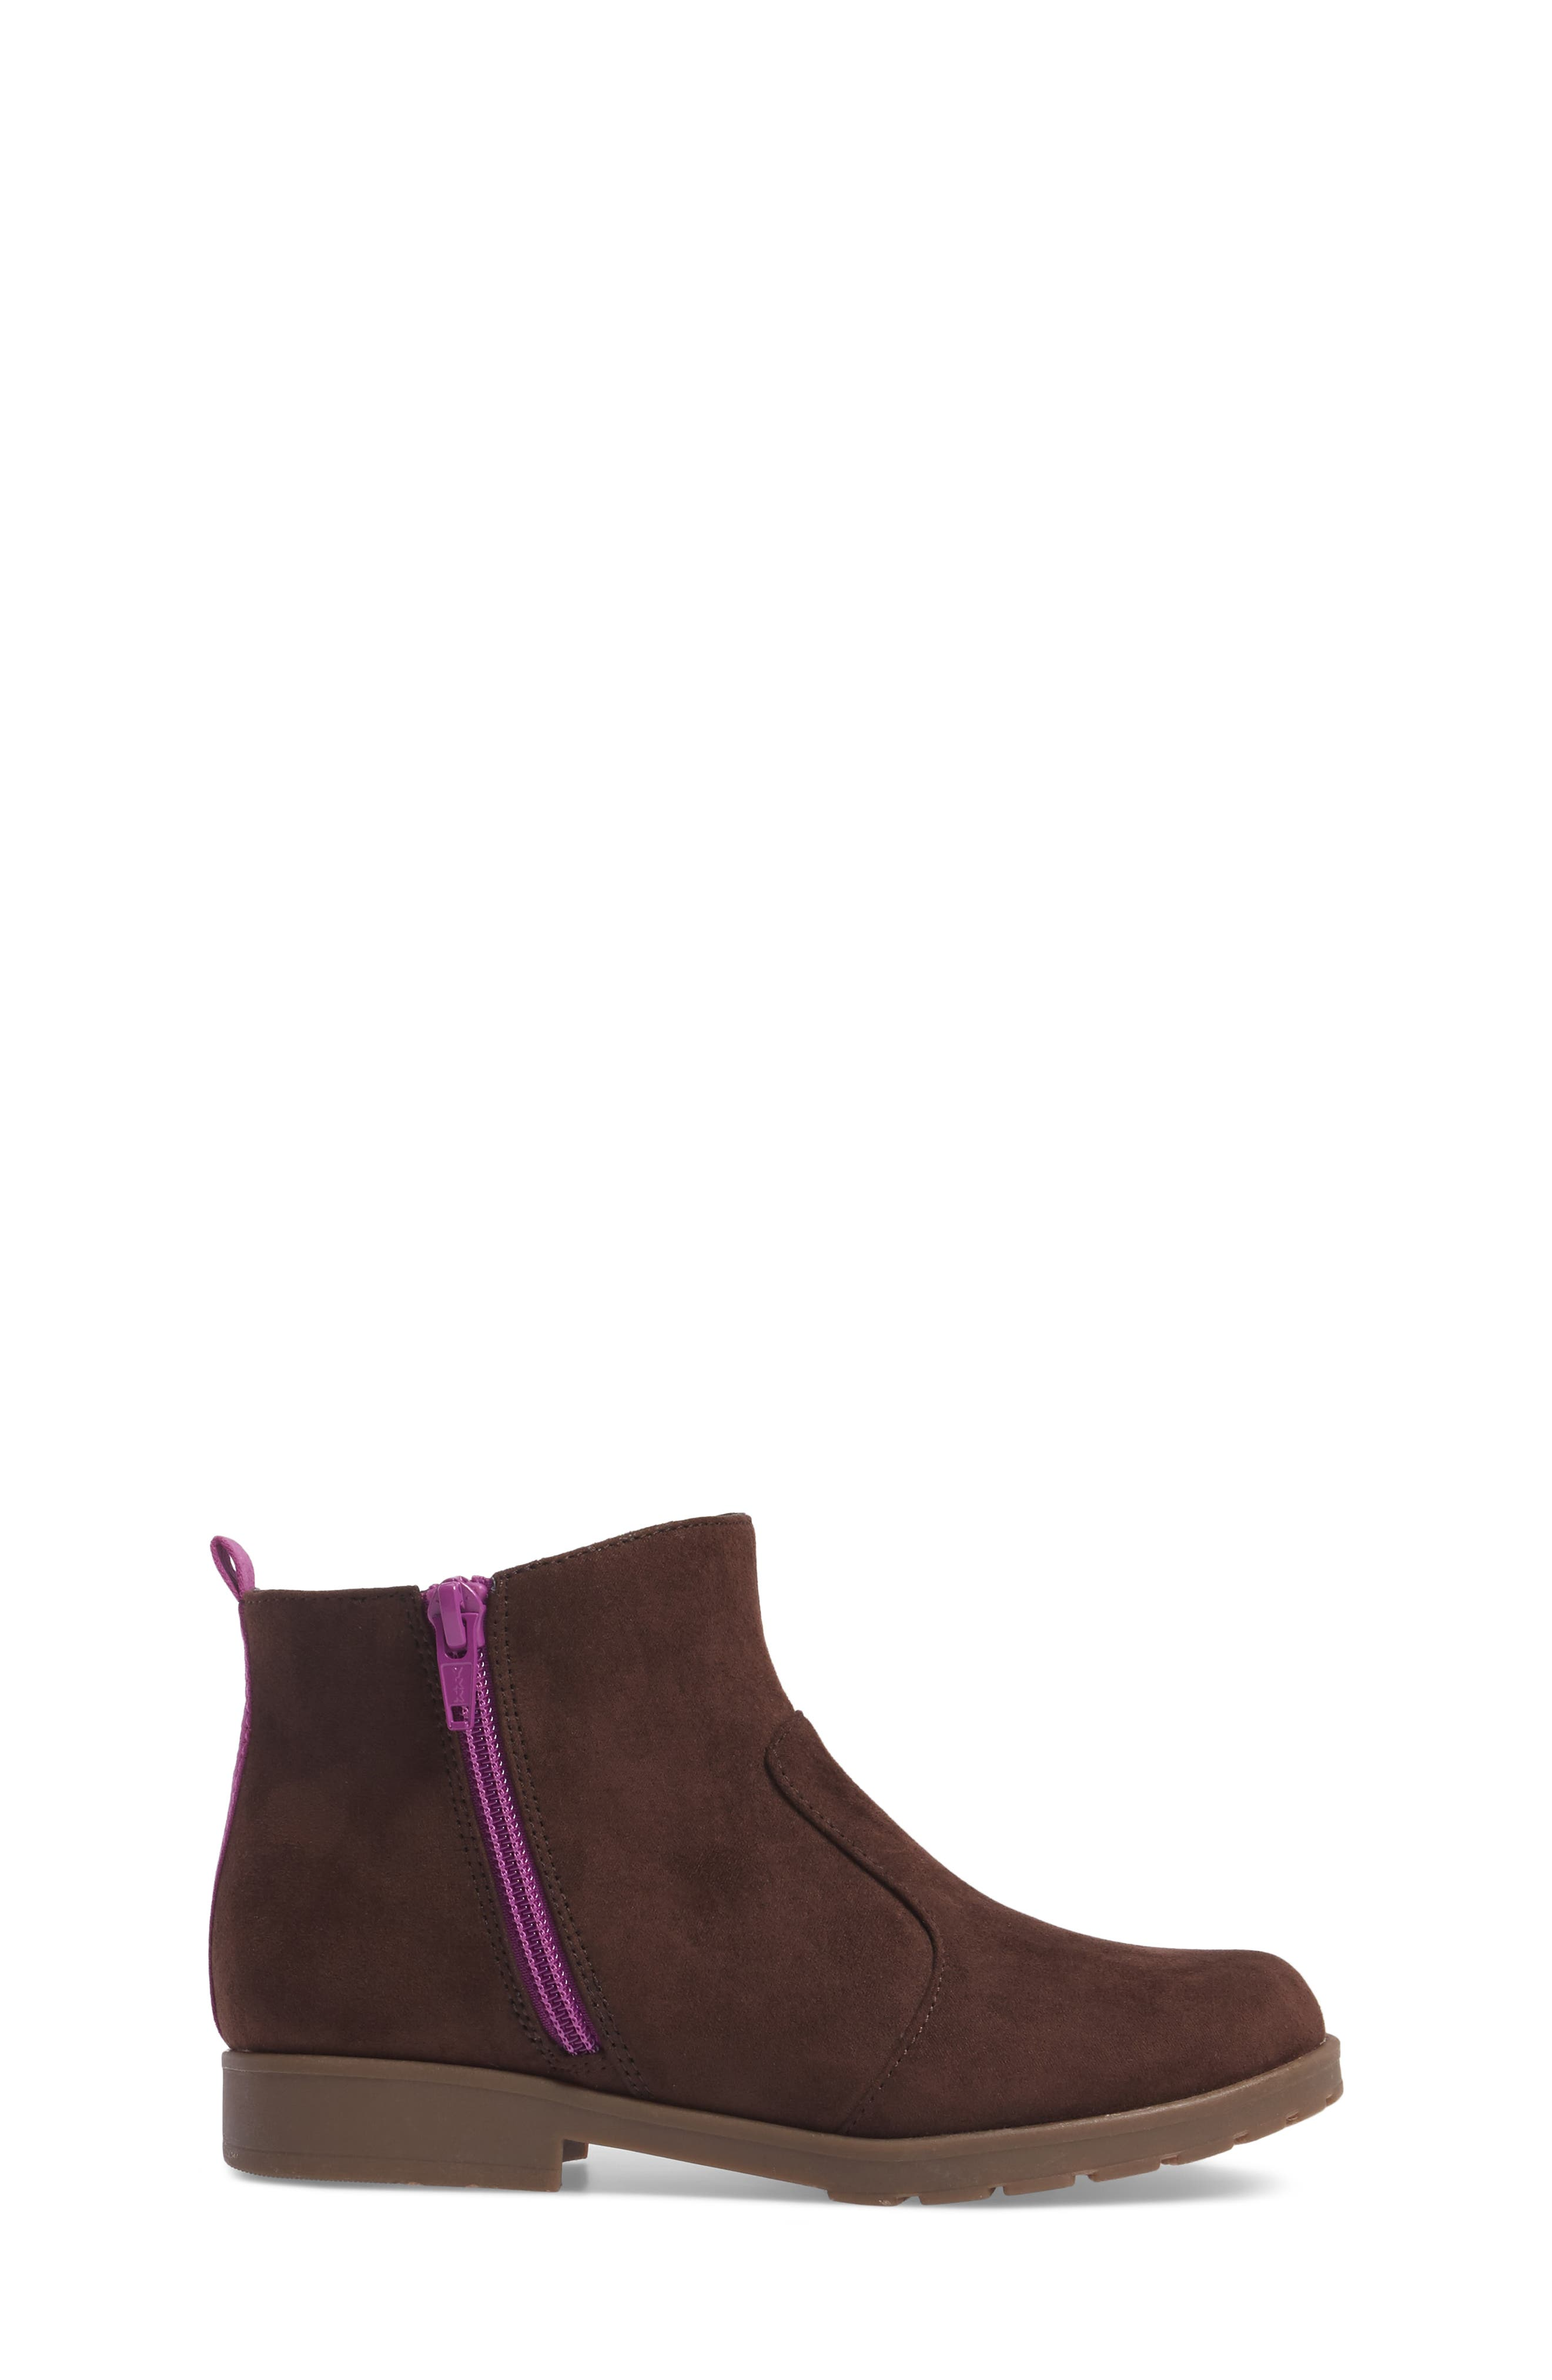 Lucy Zip Bootie,                             Alternate thumbnail 3, color,                             Chocolate